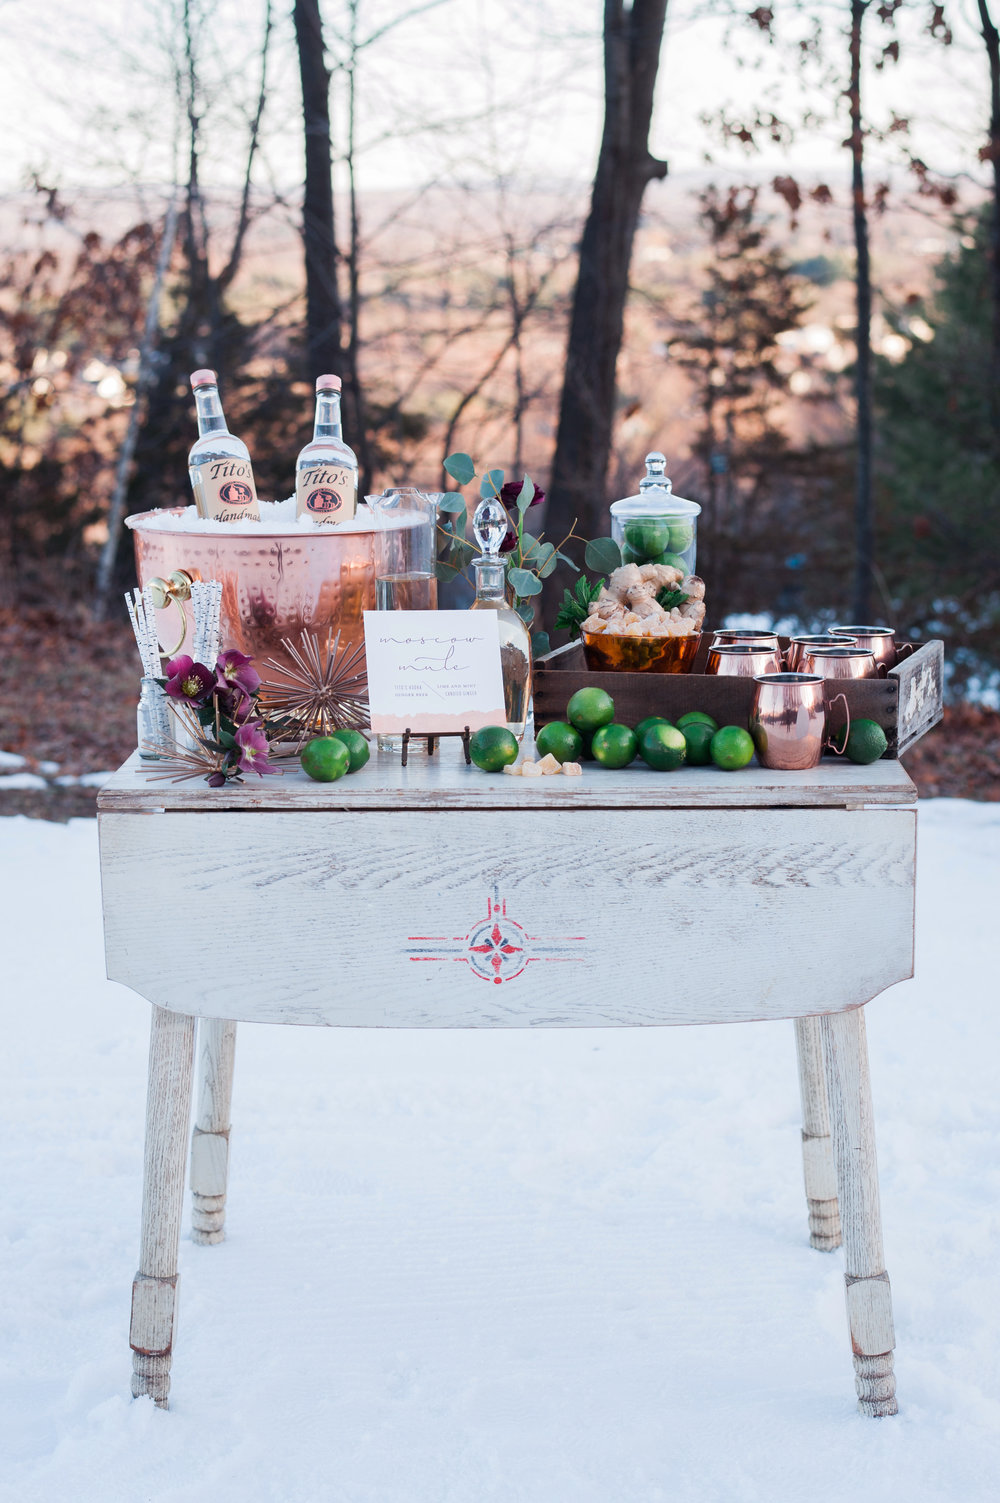 SKI Winter themed wedding ideas copper themed_006.jpg